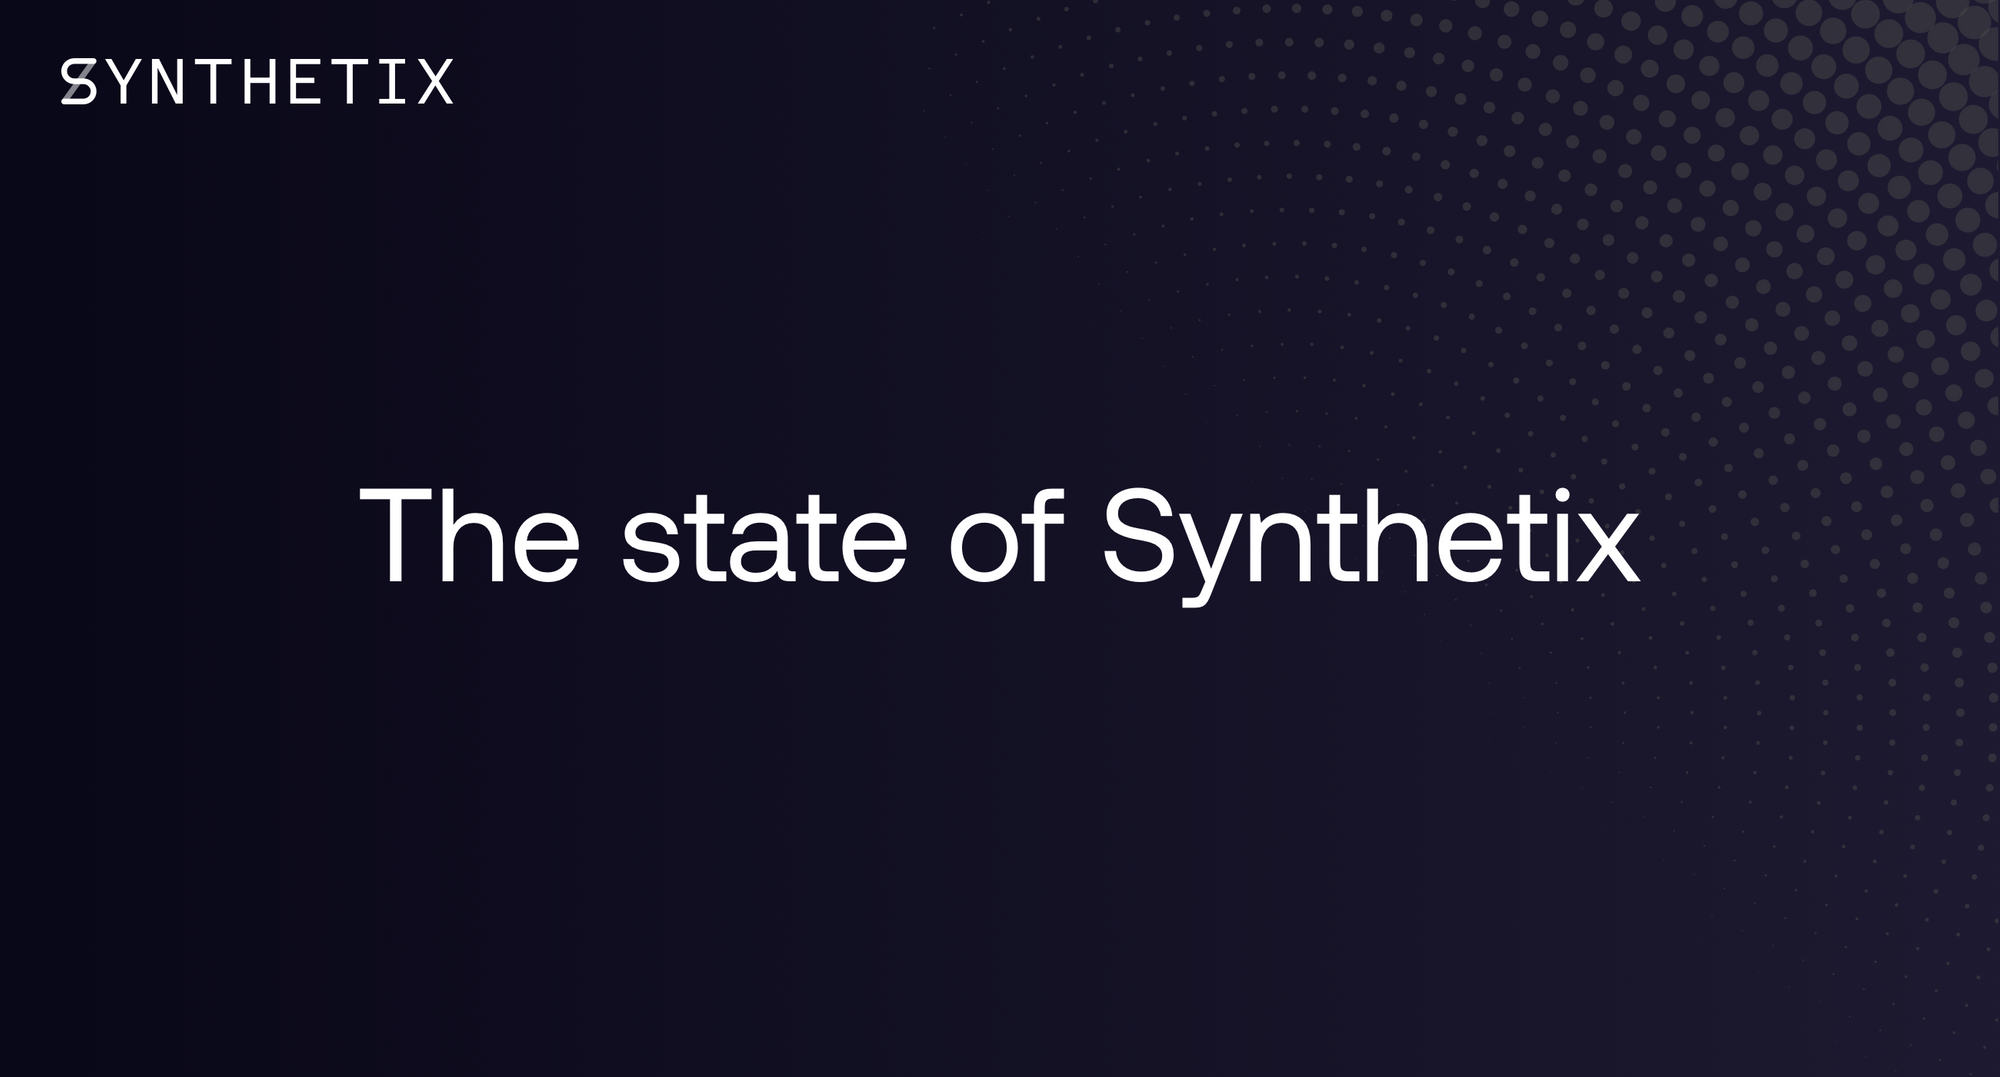 The state of Synthetix